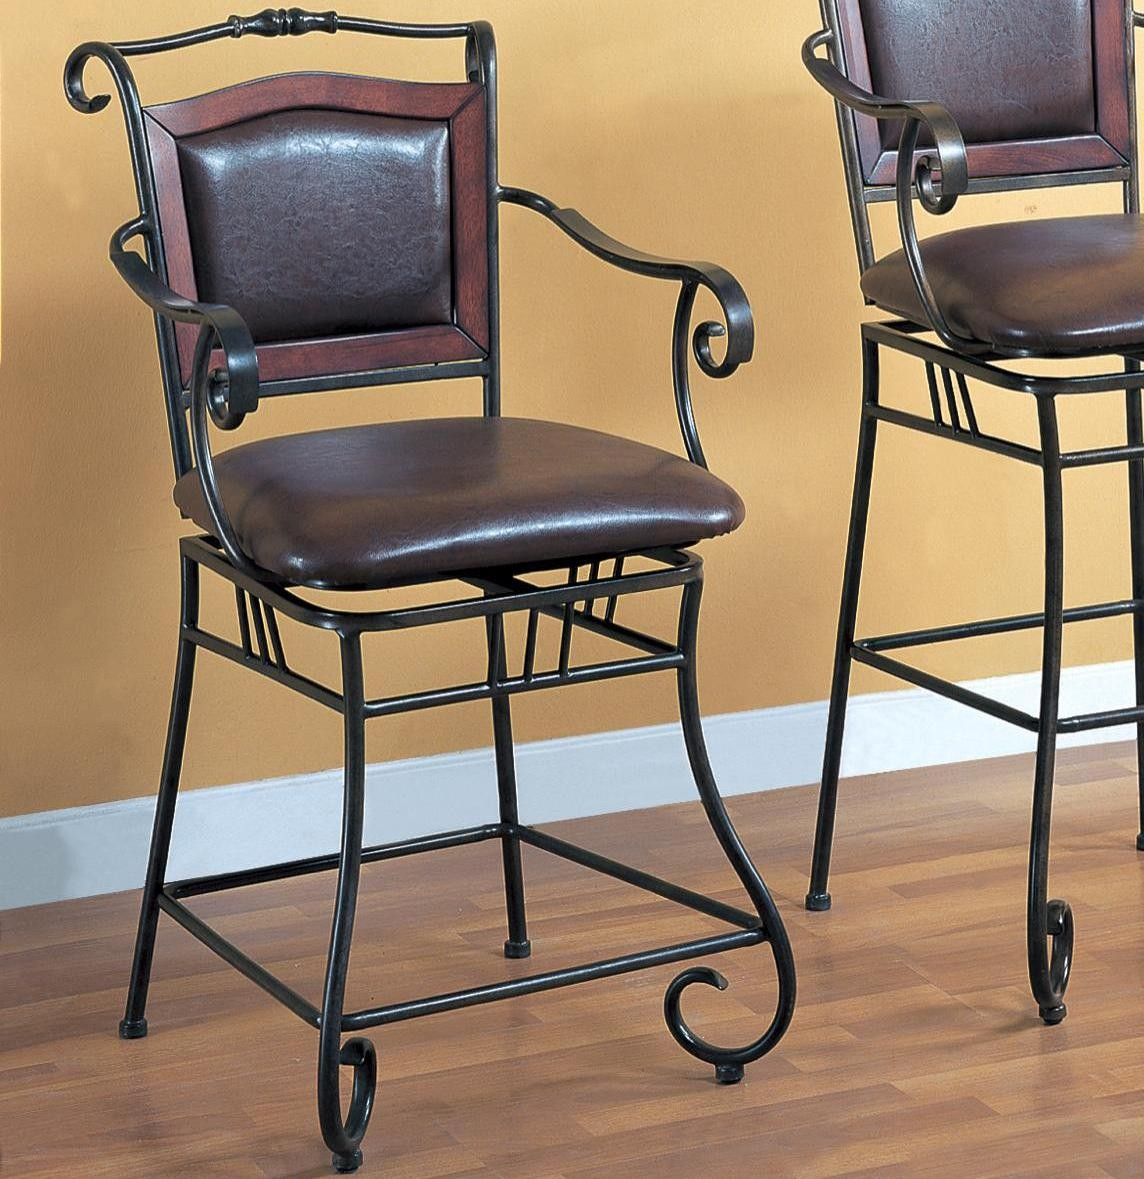 white wrought iron kitchen chairs oxo sprout high chair decor ideas